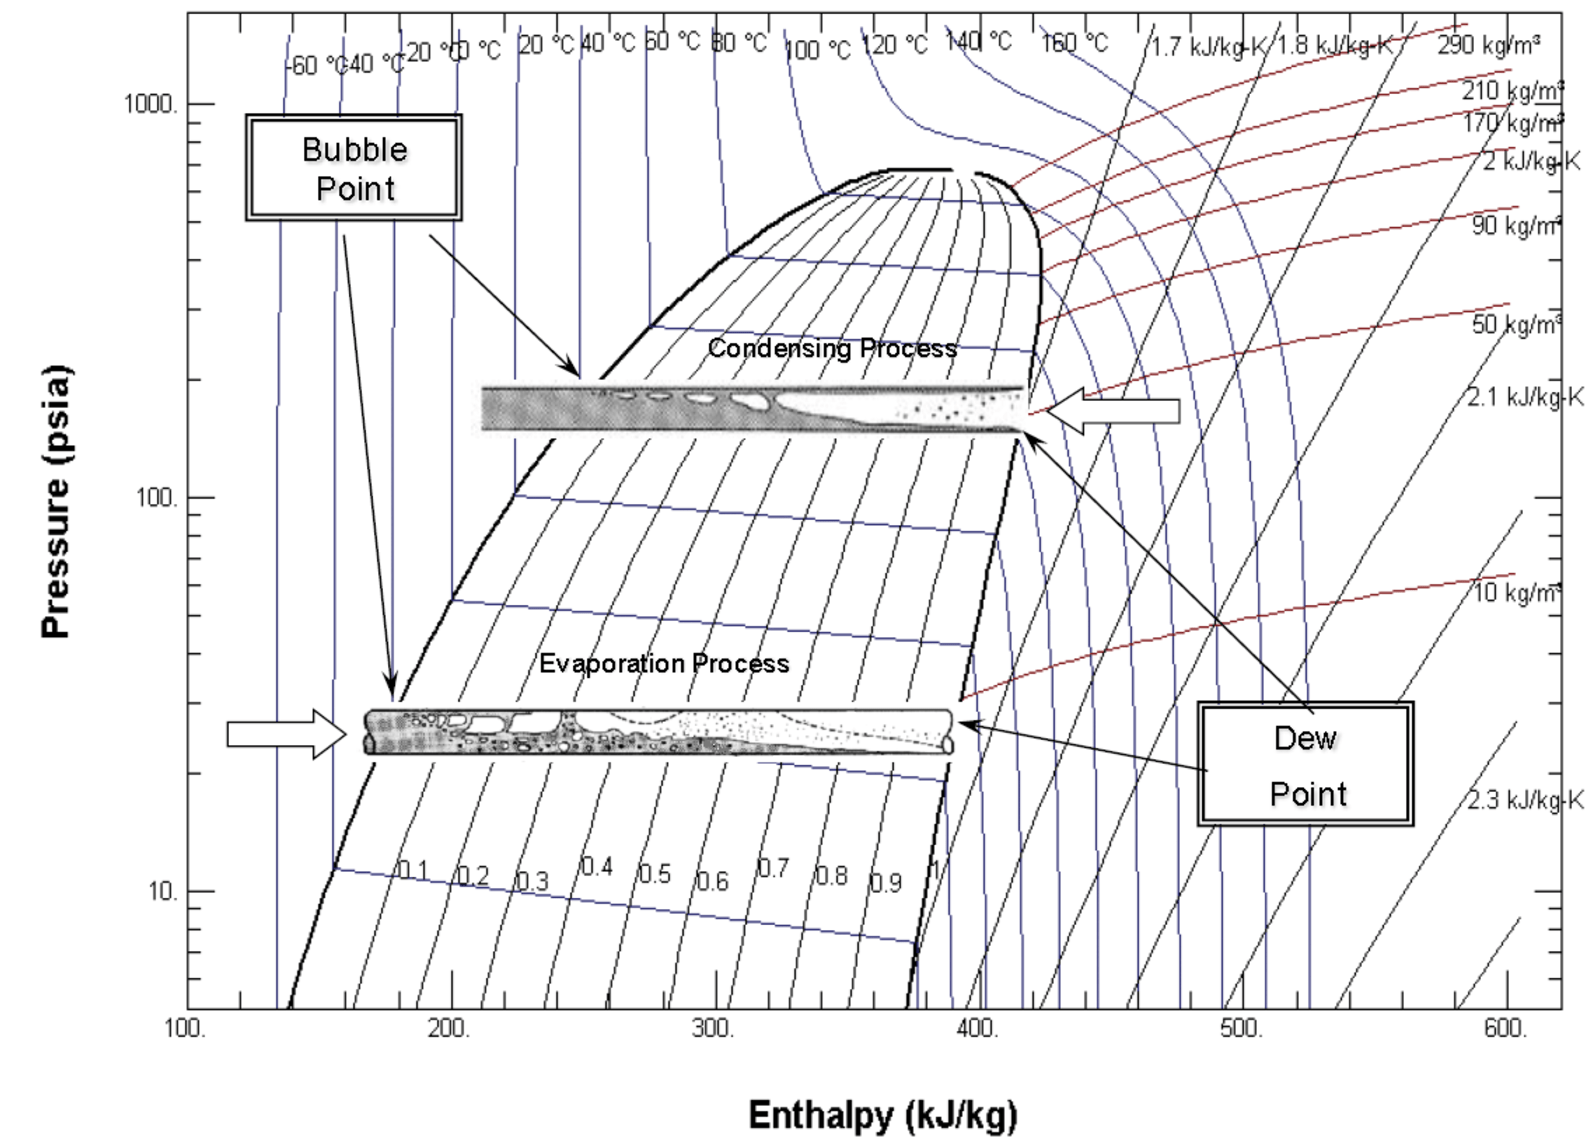 medium resolution of figure 3 mollier diagram p h chart condensing and evaporation process courtesy honeywell